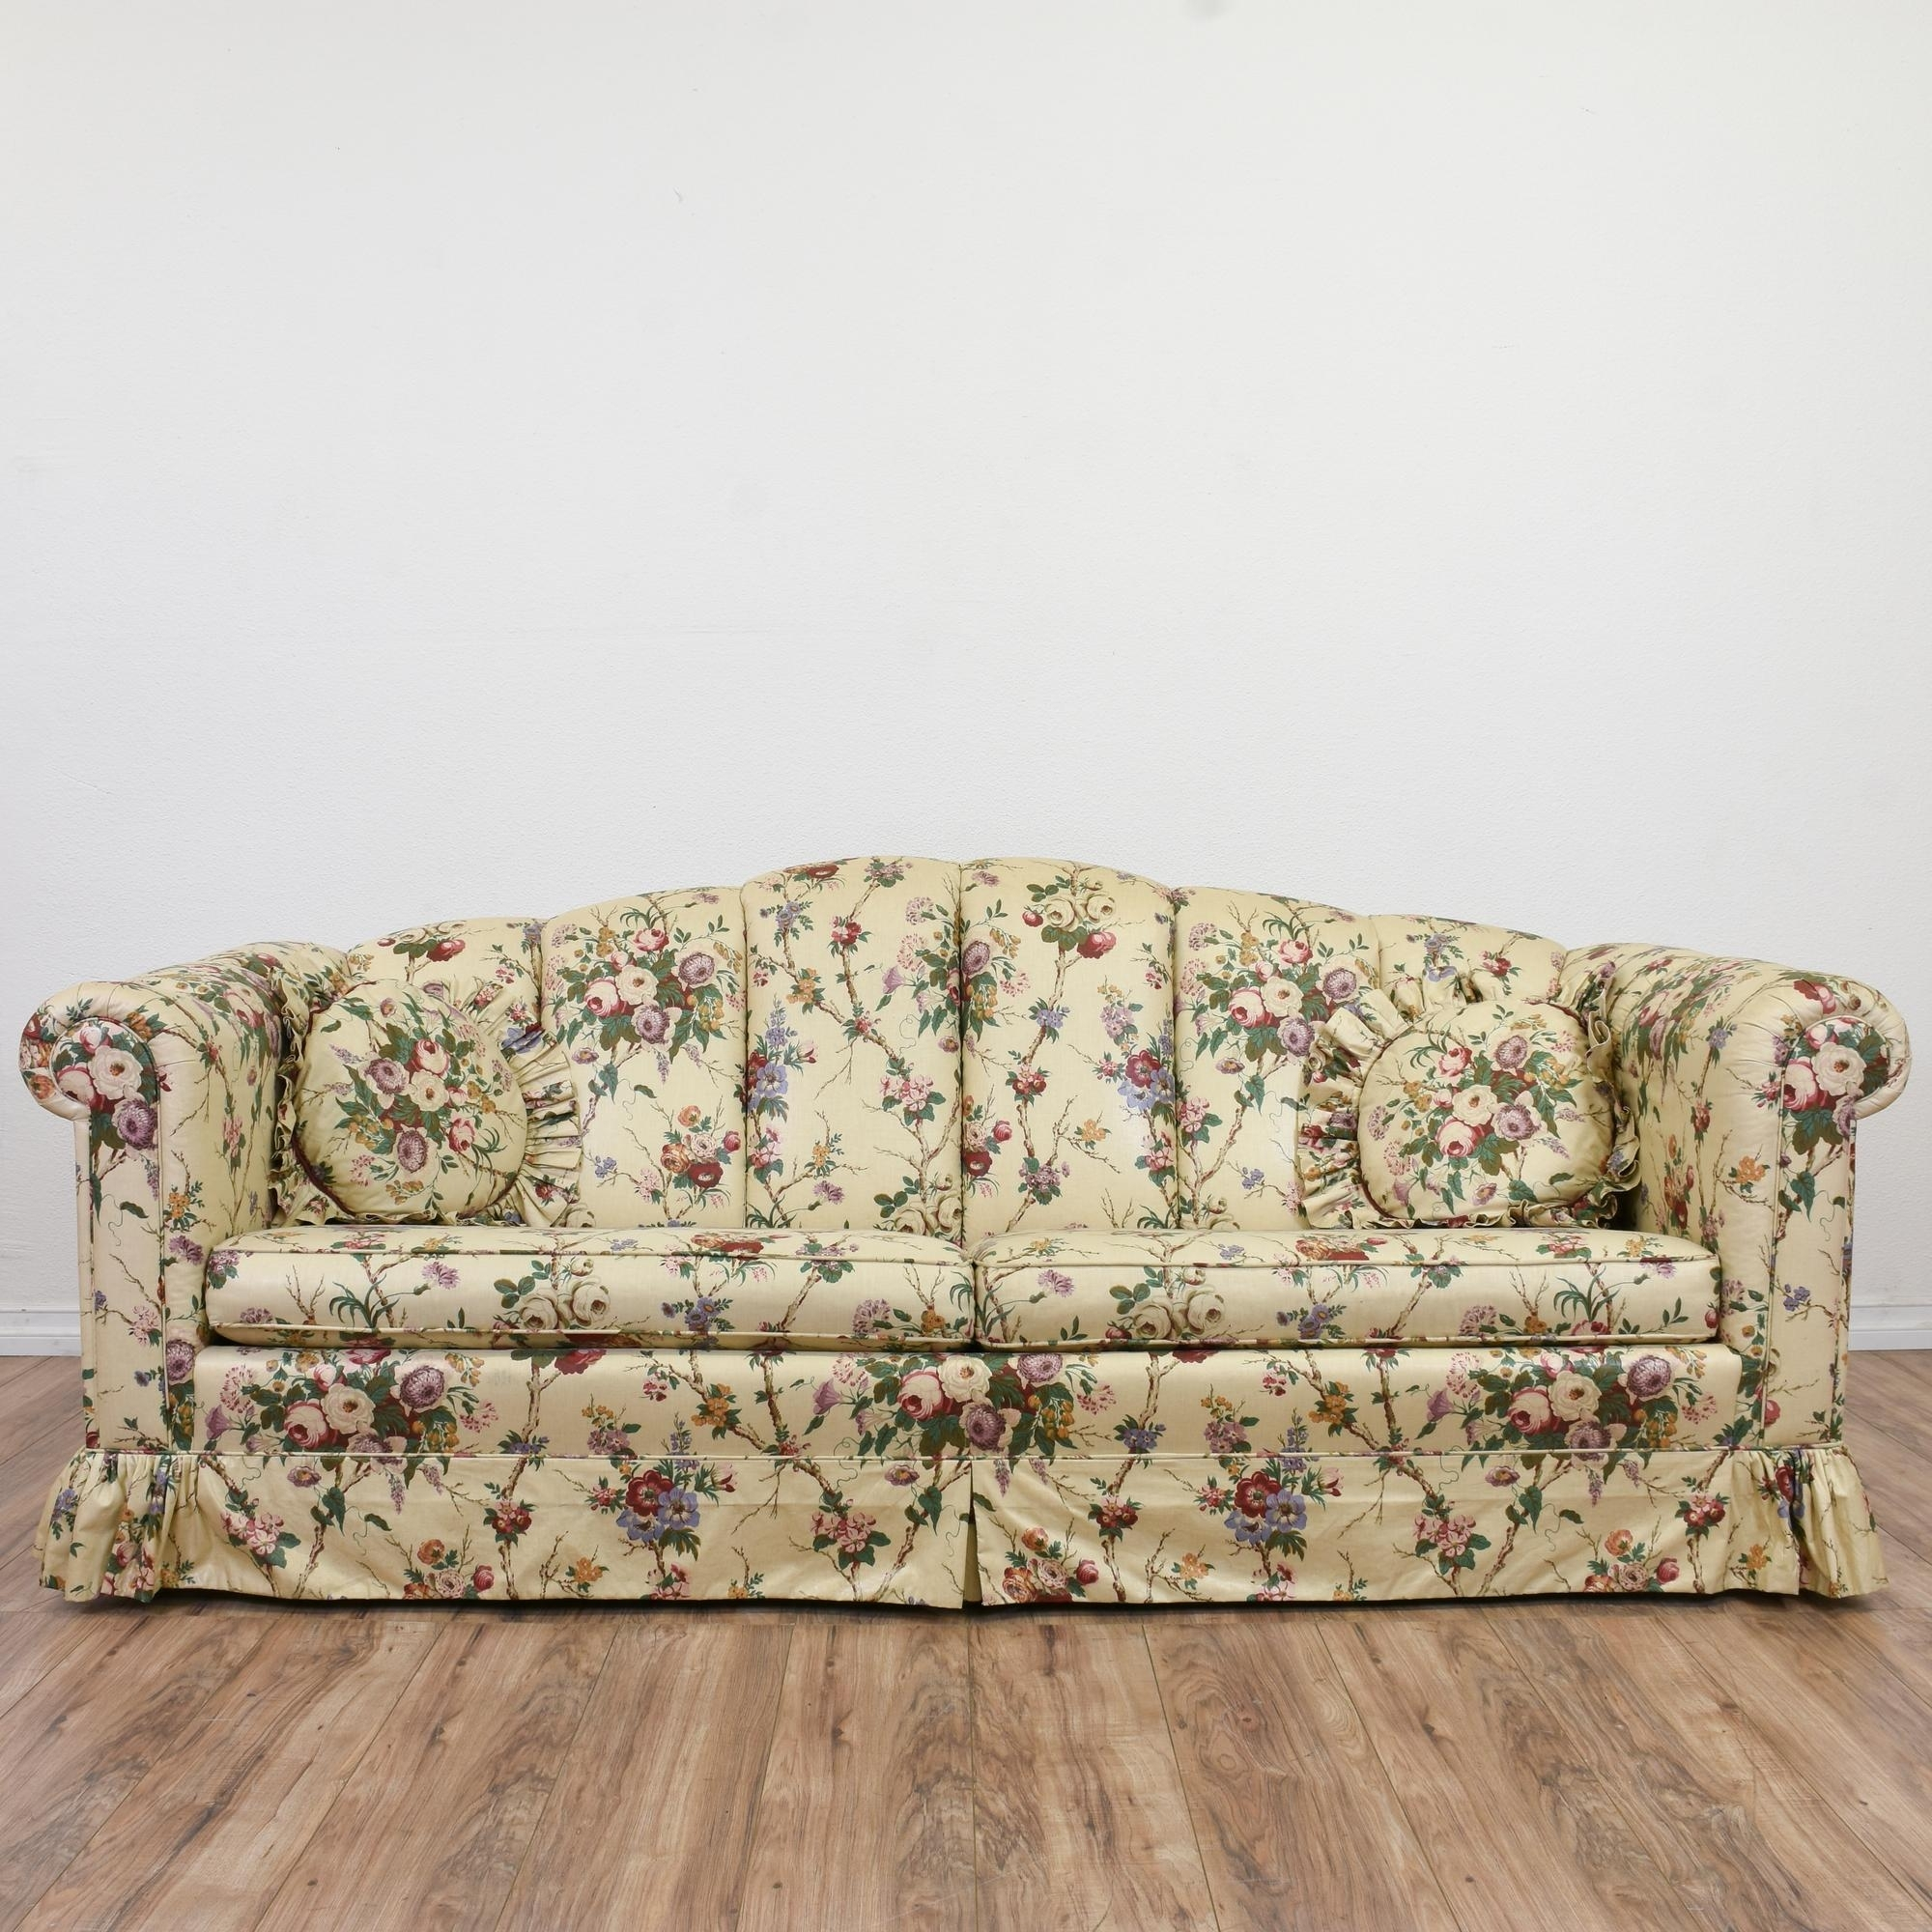 This Sofa Is Upholstered In A Durable Off White Beige, Pink And With Widely Used Yellow Chintz Sofas (View 12 of 15)